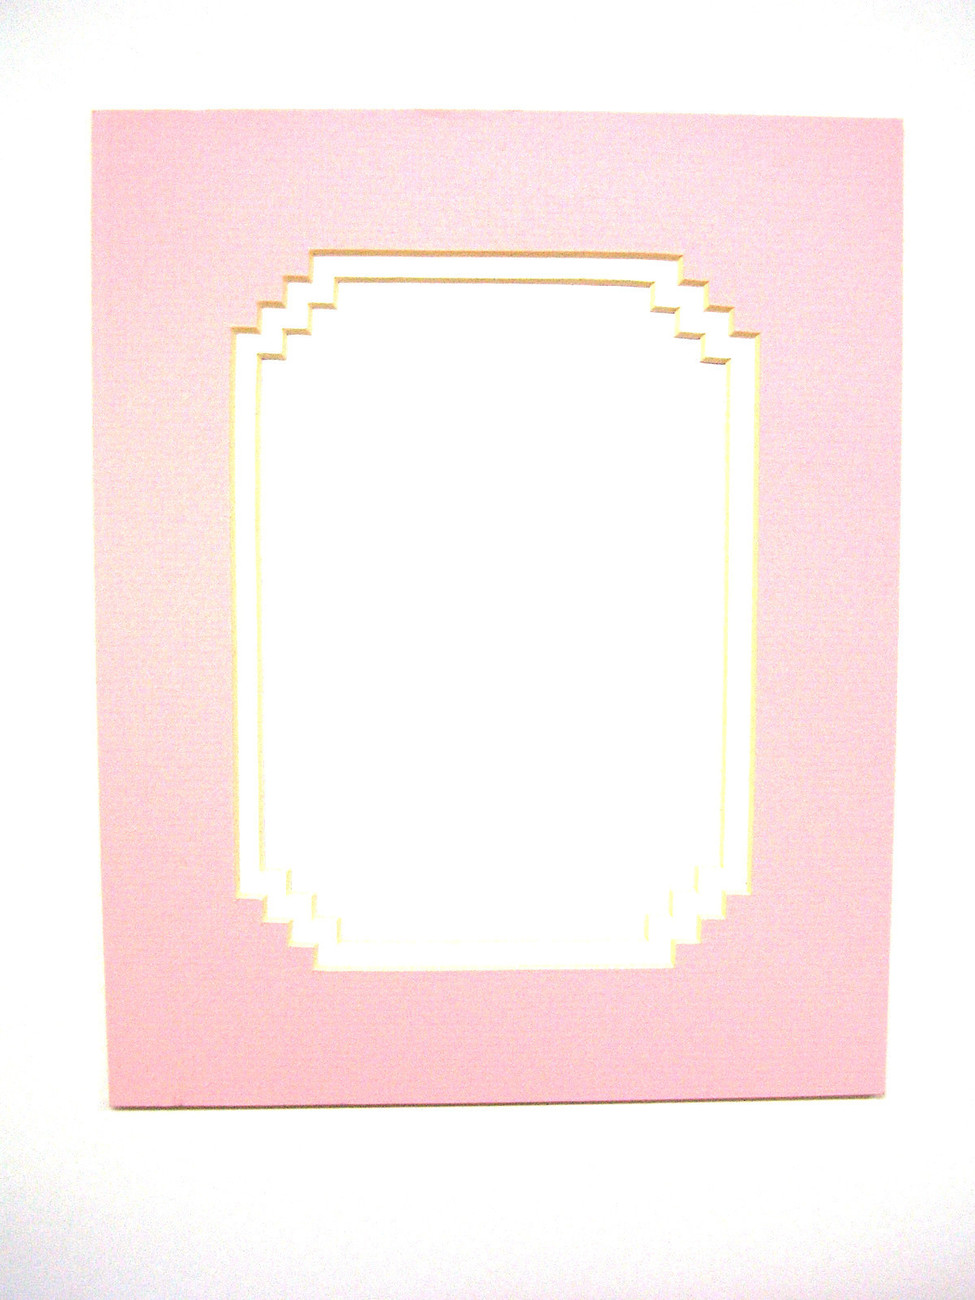 Primary image for Picture Mat French Stairstep Design Baby Pink with white liner 8x10 for 5x7